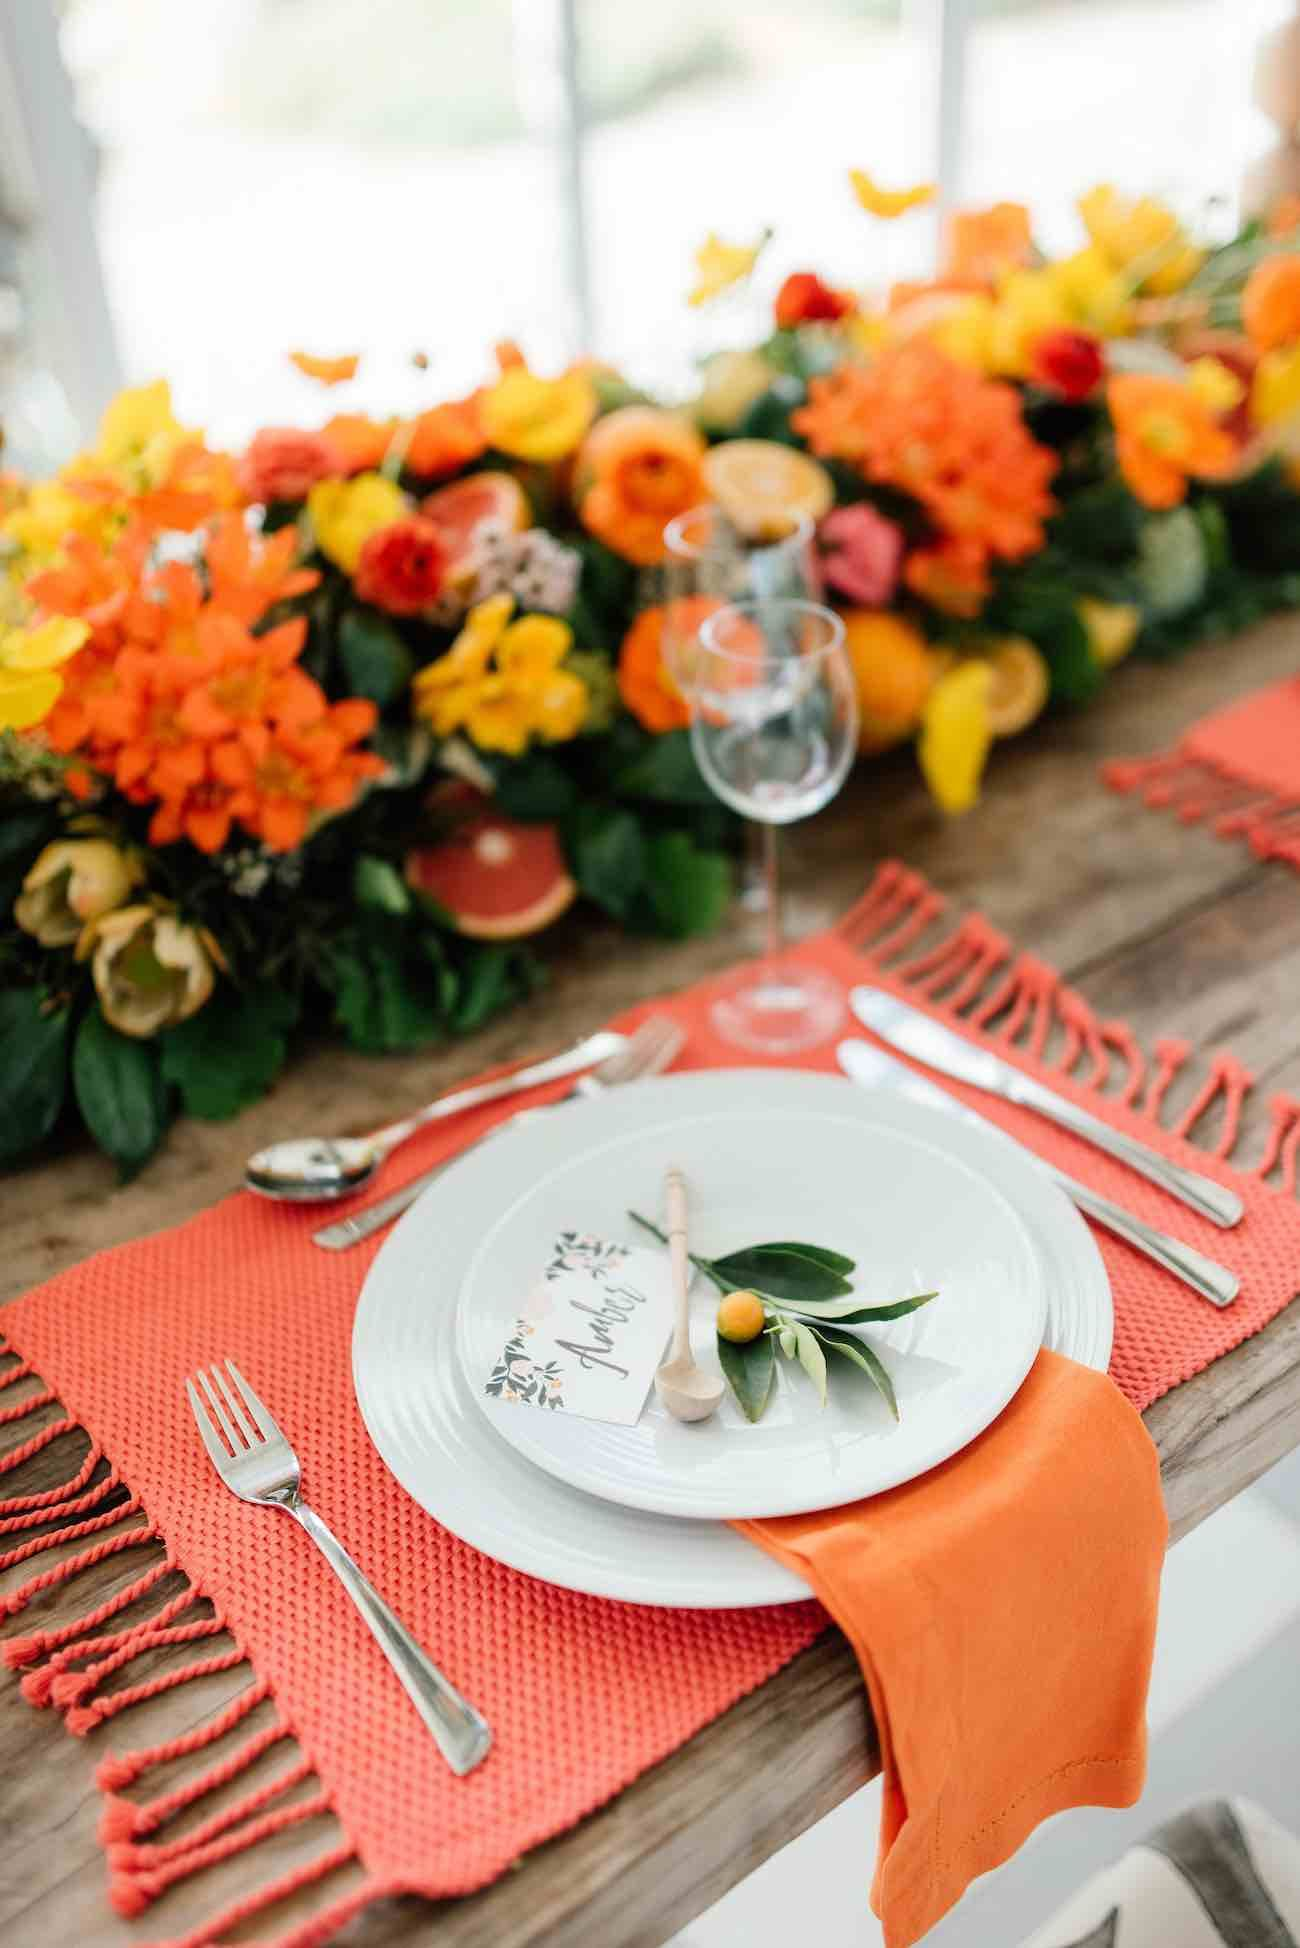 Citrus Wedding theme: place setting at gorgeous tablescape of orange, yellow and green flowers!